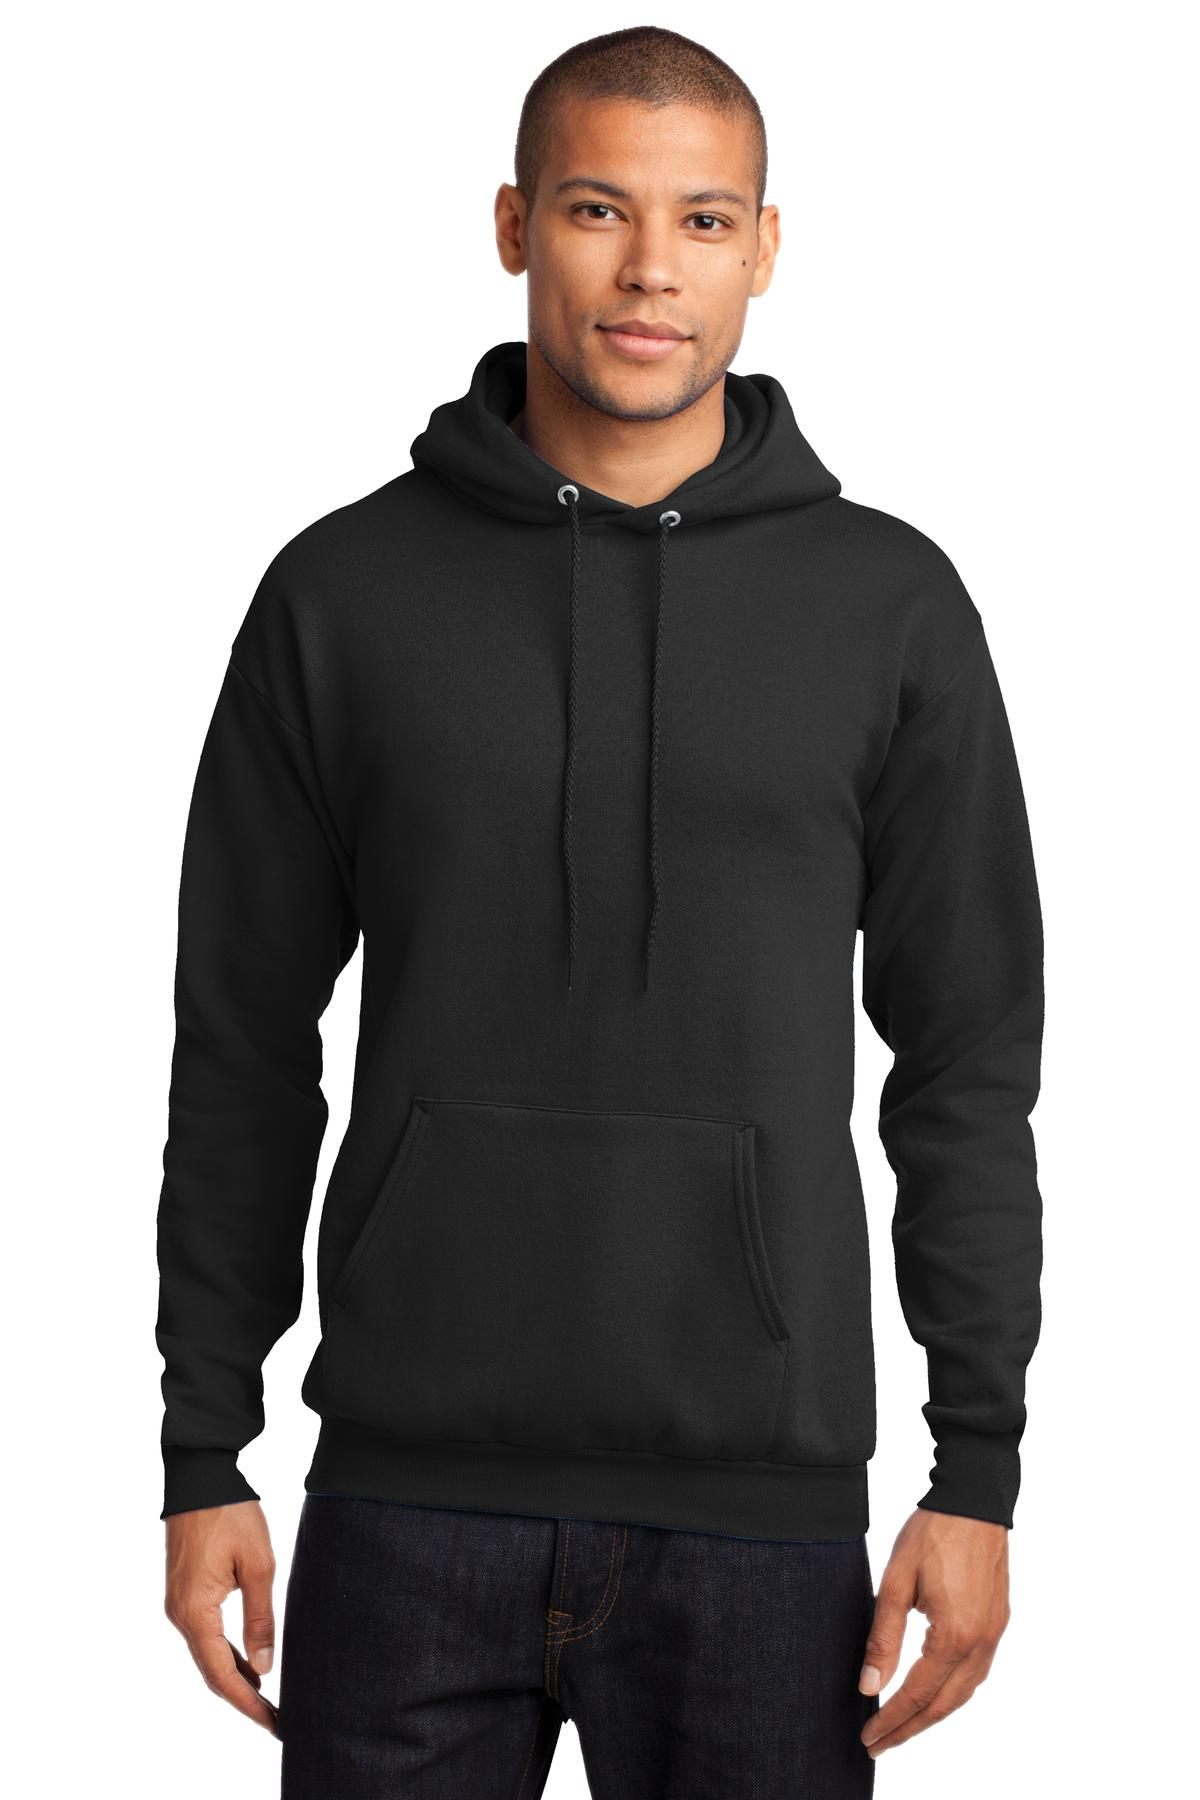 Port & Company ®  - Core Fleece Pullover Hooded Sweatshirt. PC78H - Jet Black